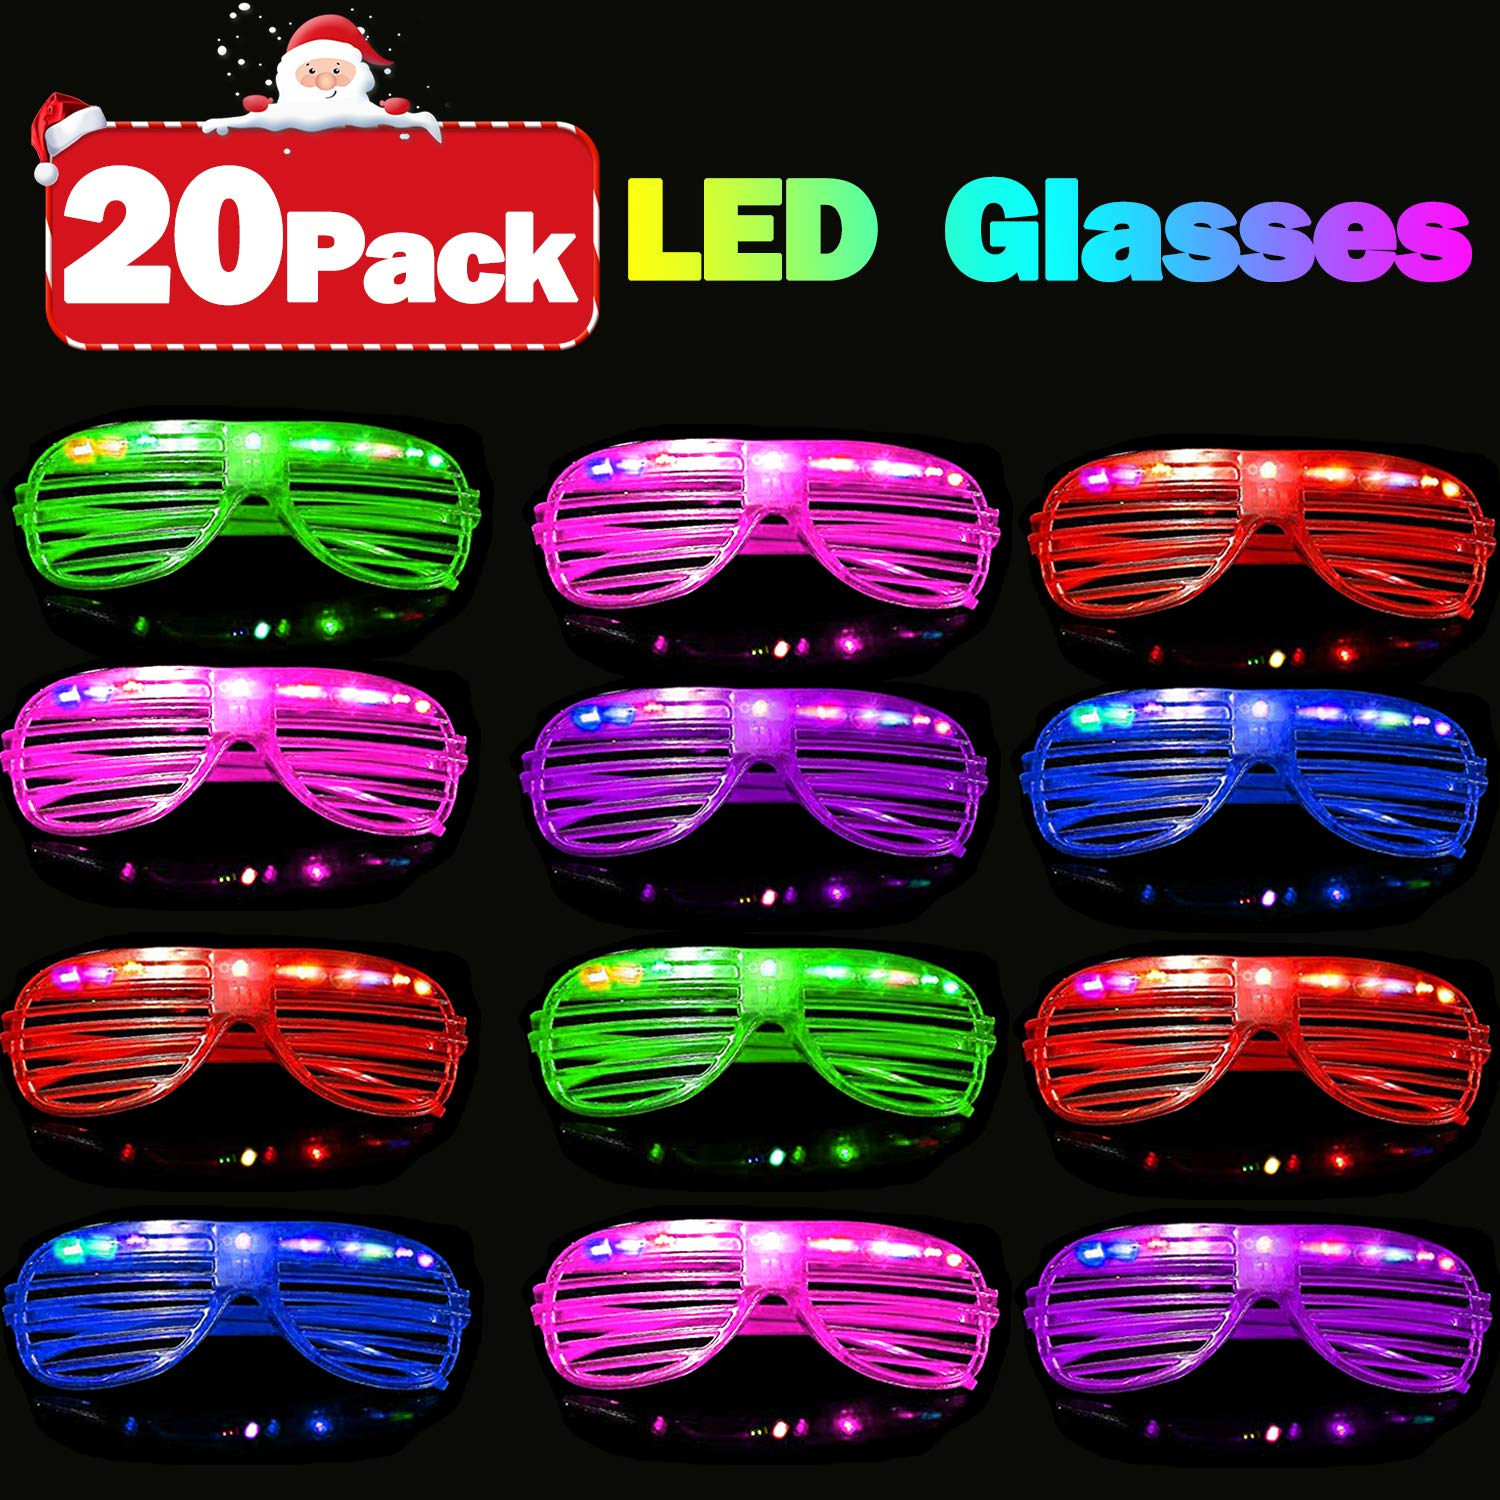 20 Pack Party Favors LED Light Up Glasses Glow in The Dark Party Supplies Toys Flashing Glasses Neon Shutter DJ SunGlasses Parties Decorations Holiday Birthday Gifts for Adult Kids by CHARMCZ (Image #7)